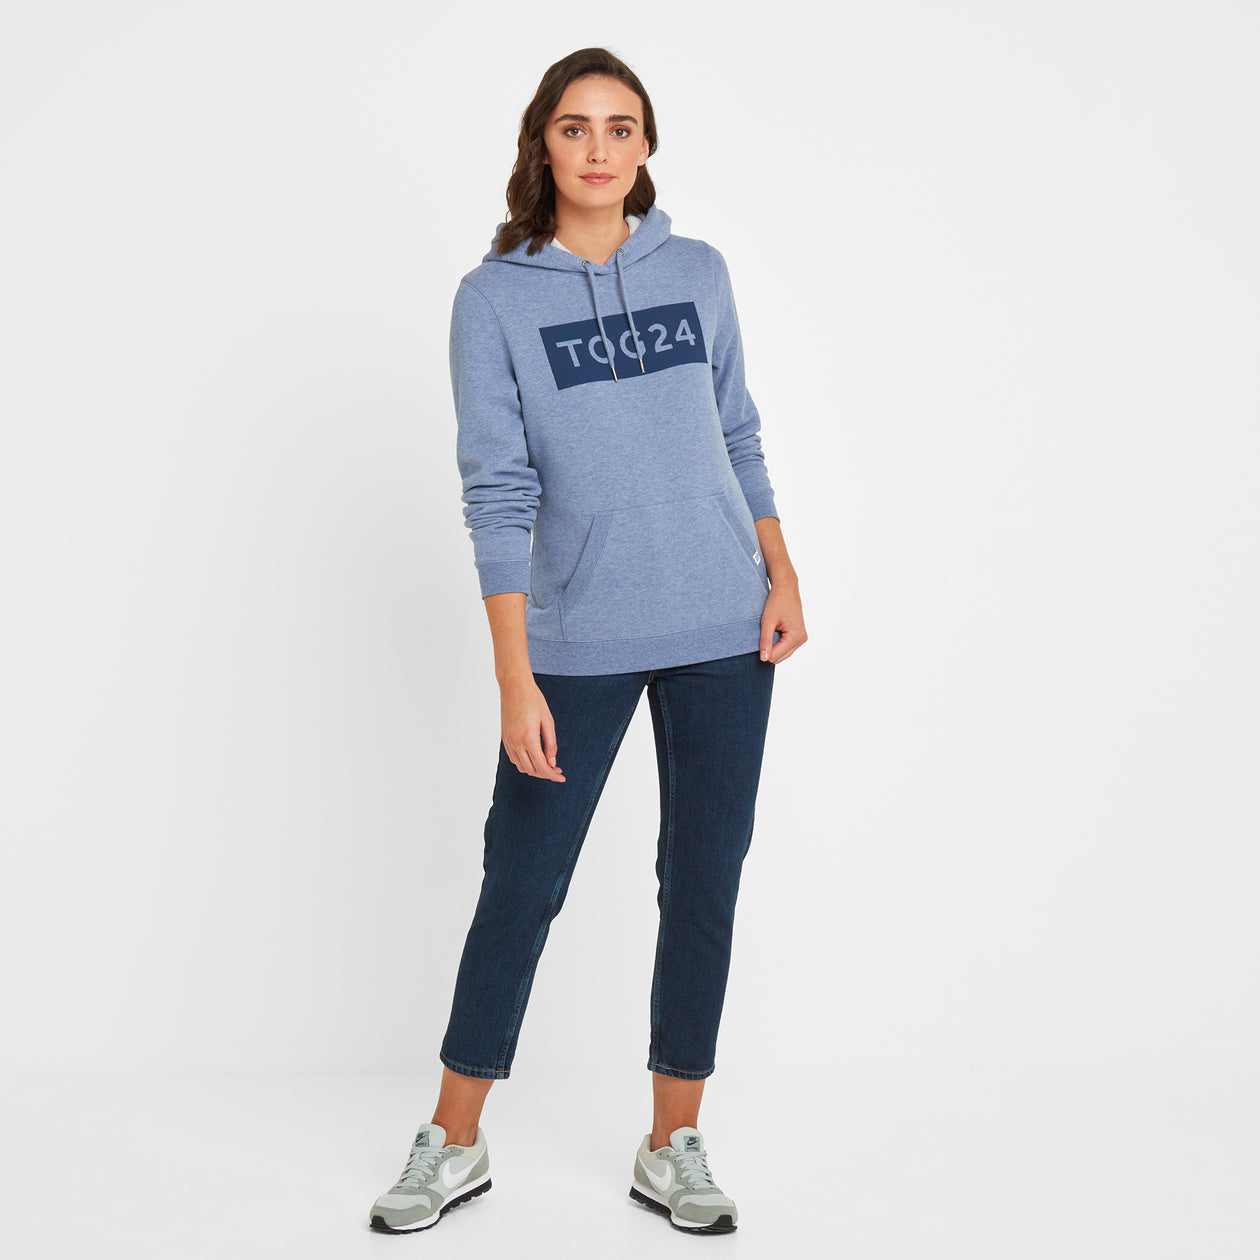 Lola Womens Hoody - China Blue Marl image 4